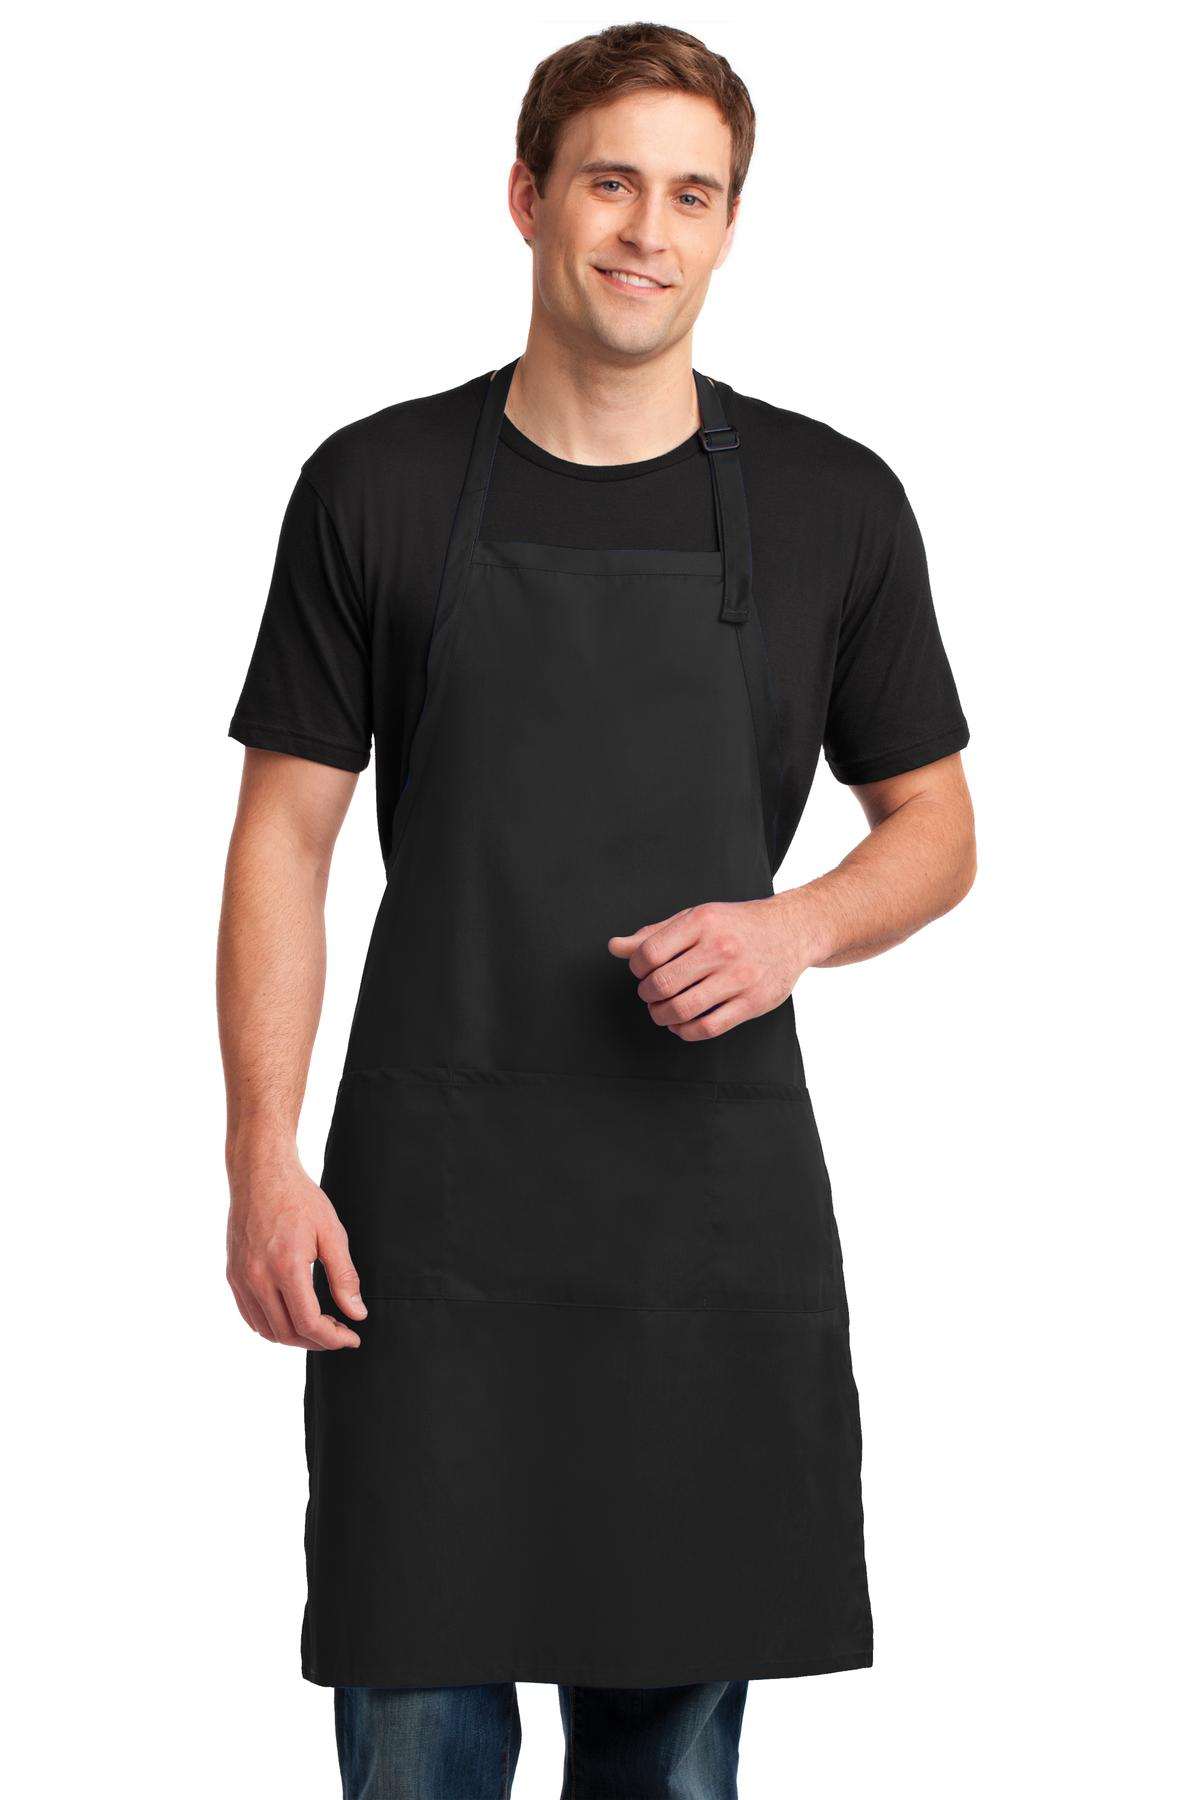 Easy Care Extra Long Bib Apron with Stain Release. A700